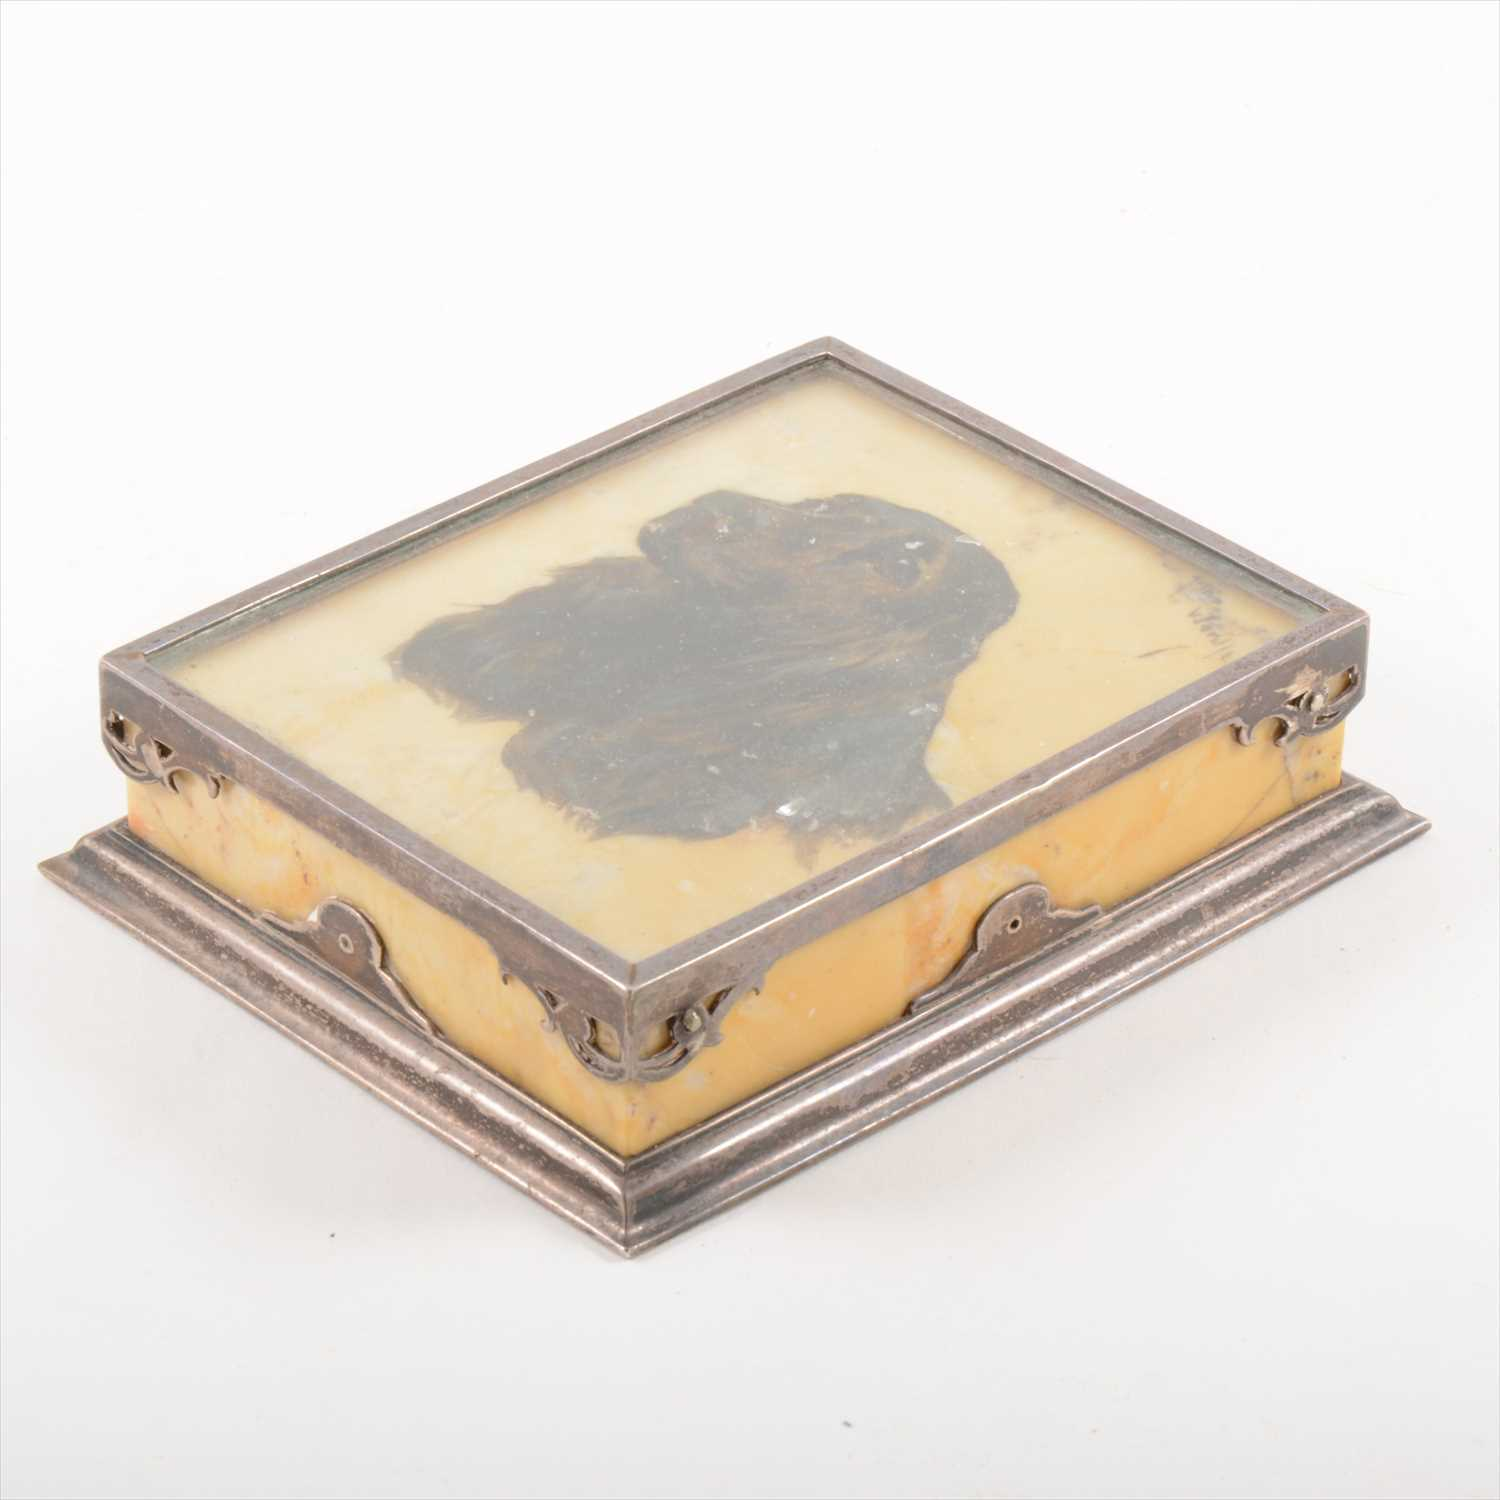 Lot 532-An Edwardian Sienna marble and white metal rectangular paperweight, signed Arthur Wardle.